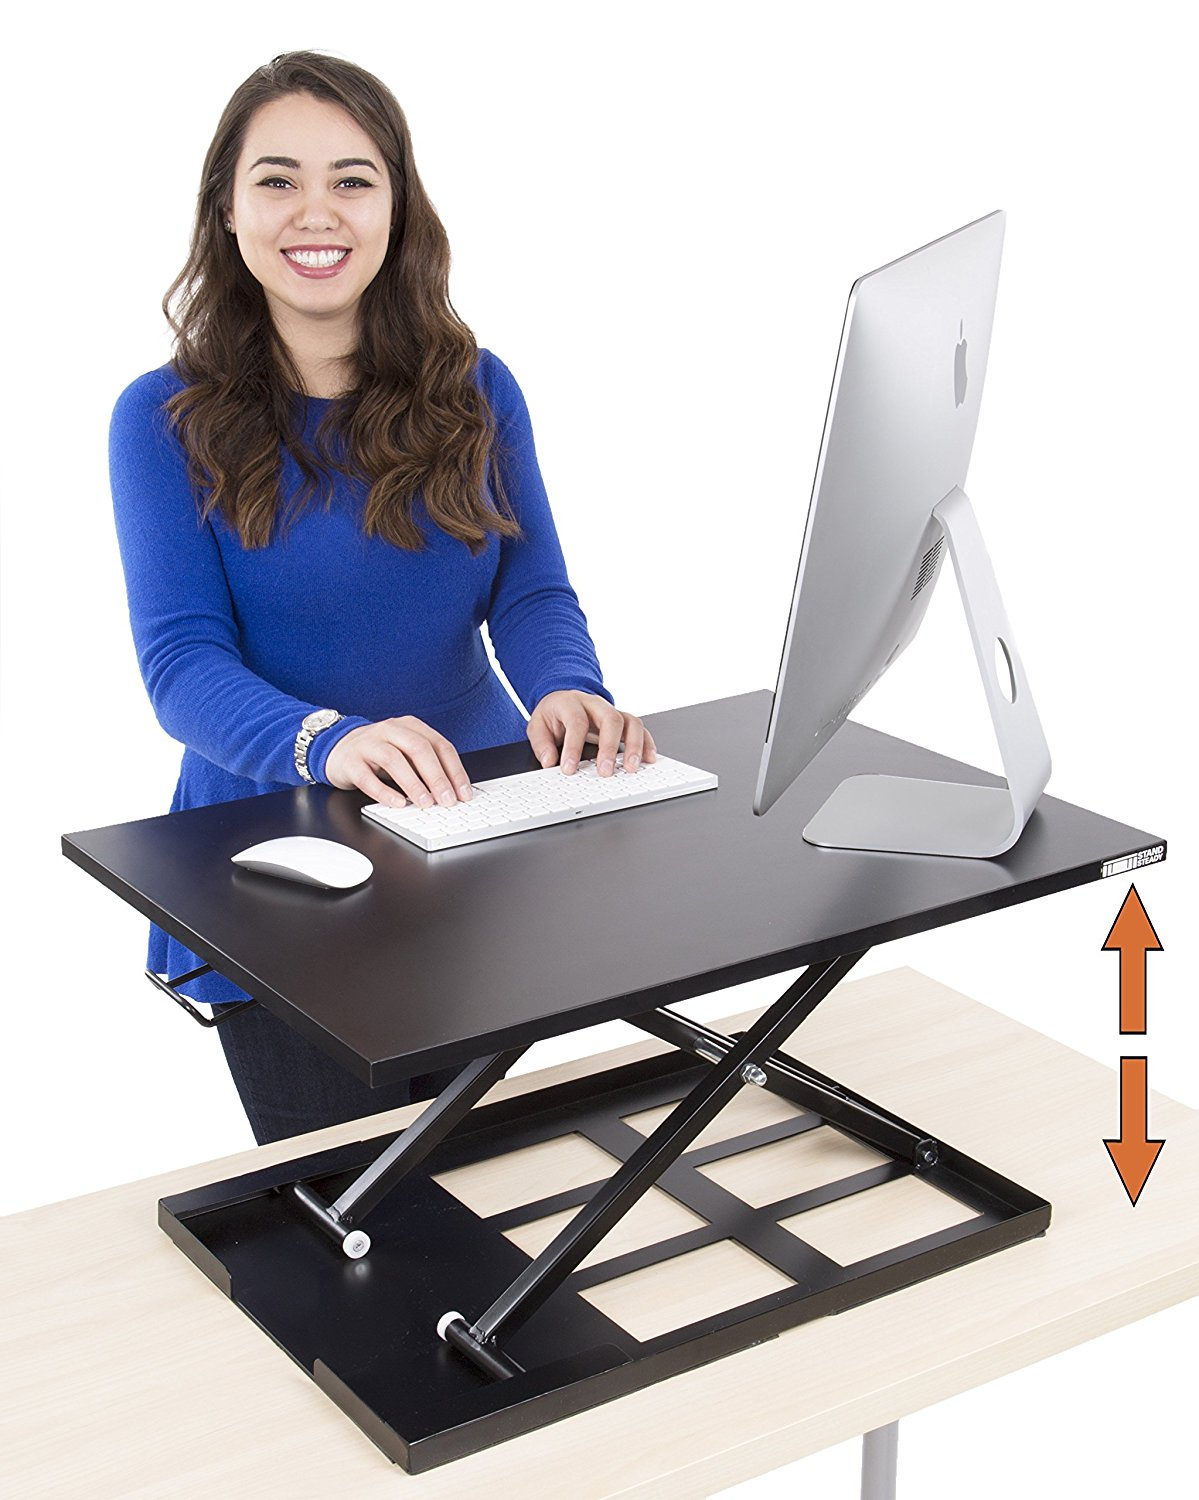 Review of Standing Desk - X-Elite Pro Height Adjustable Desk Converter